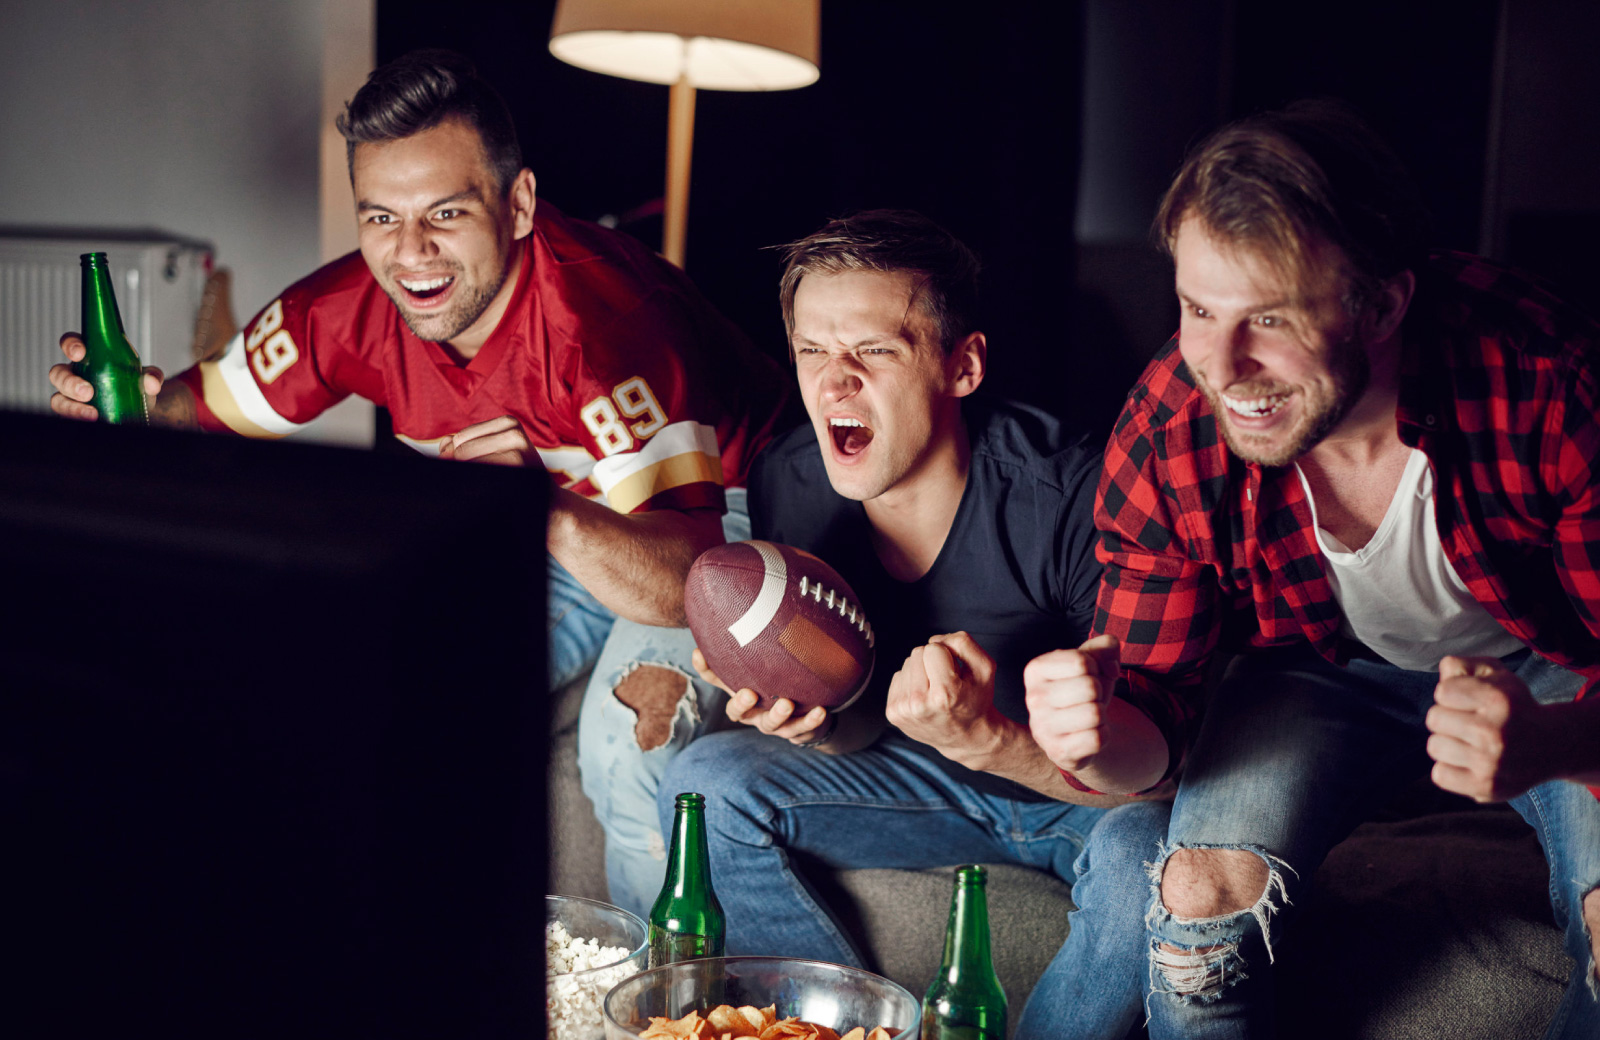 men excitedly watching football on tv